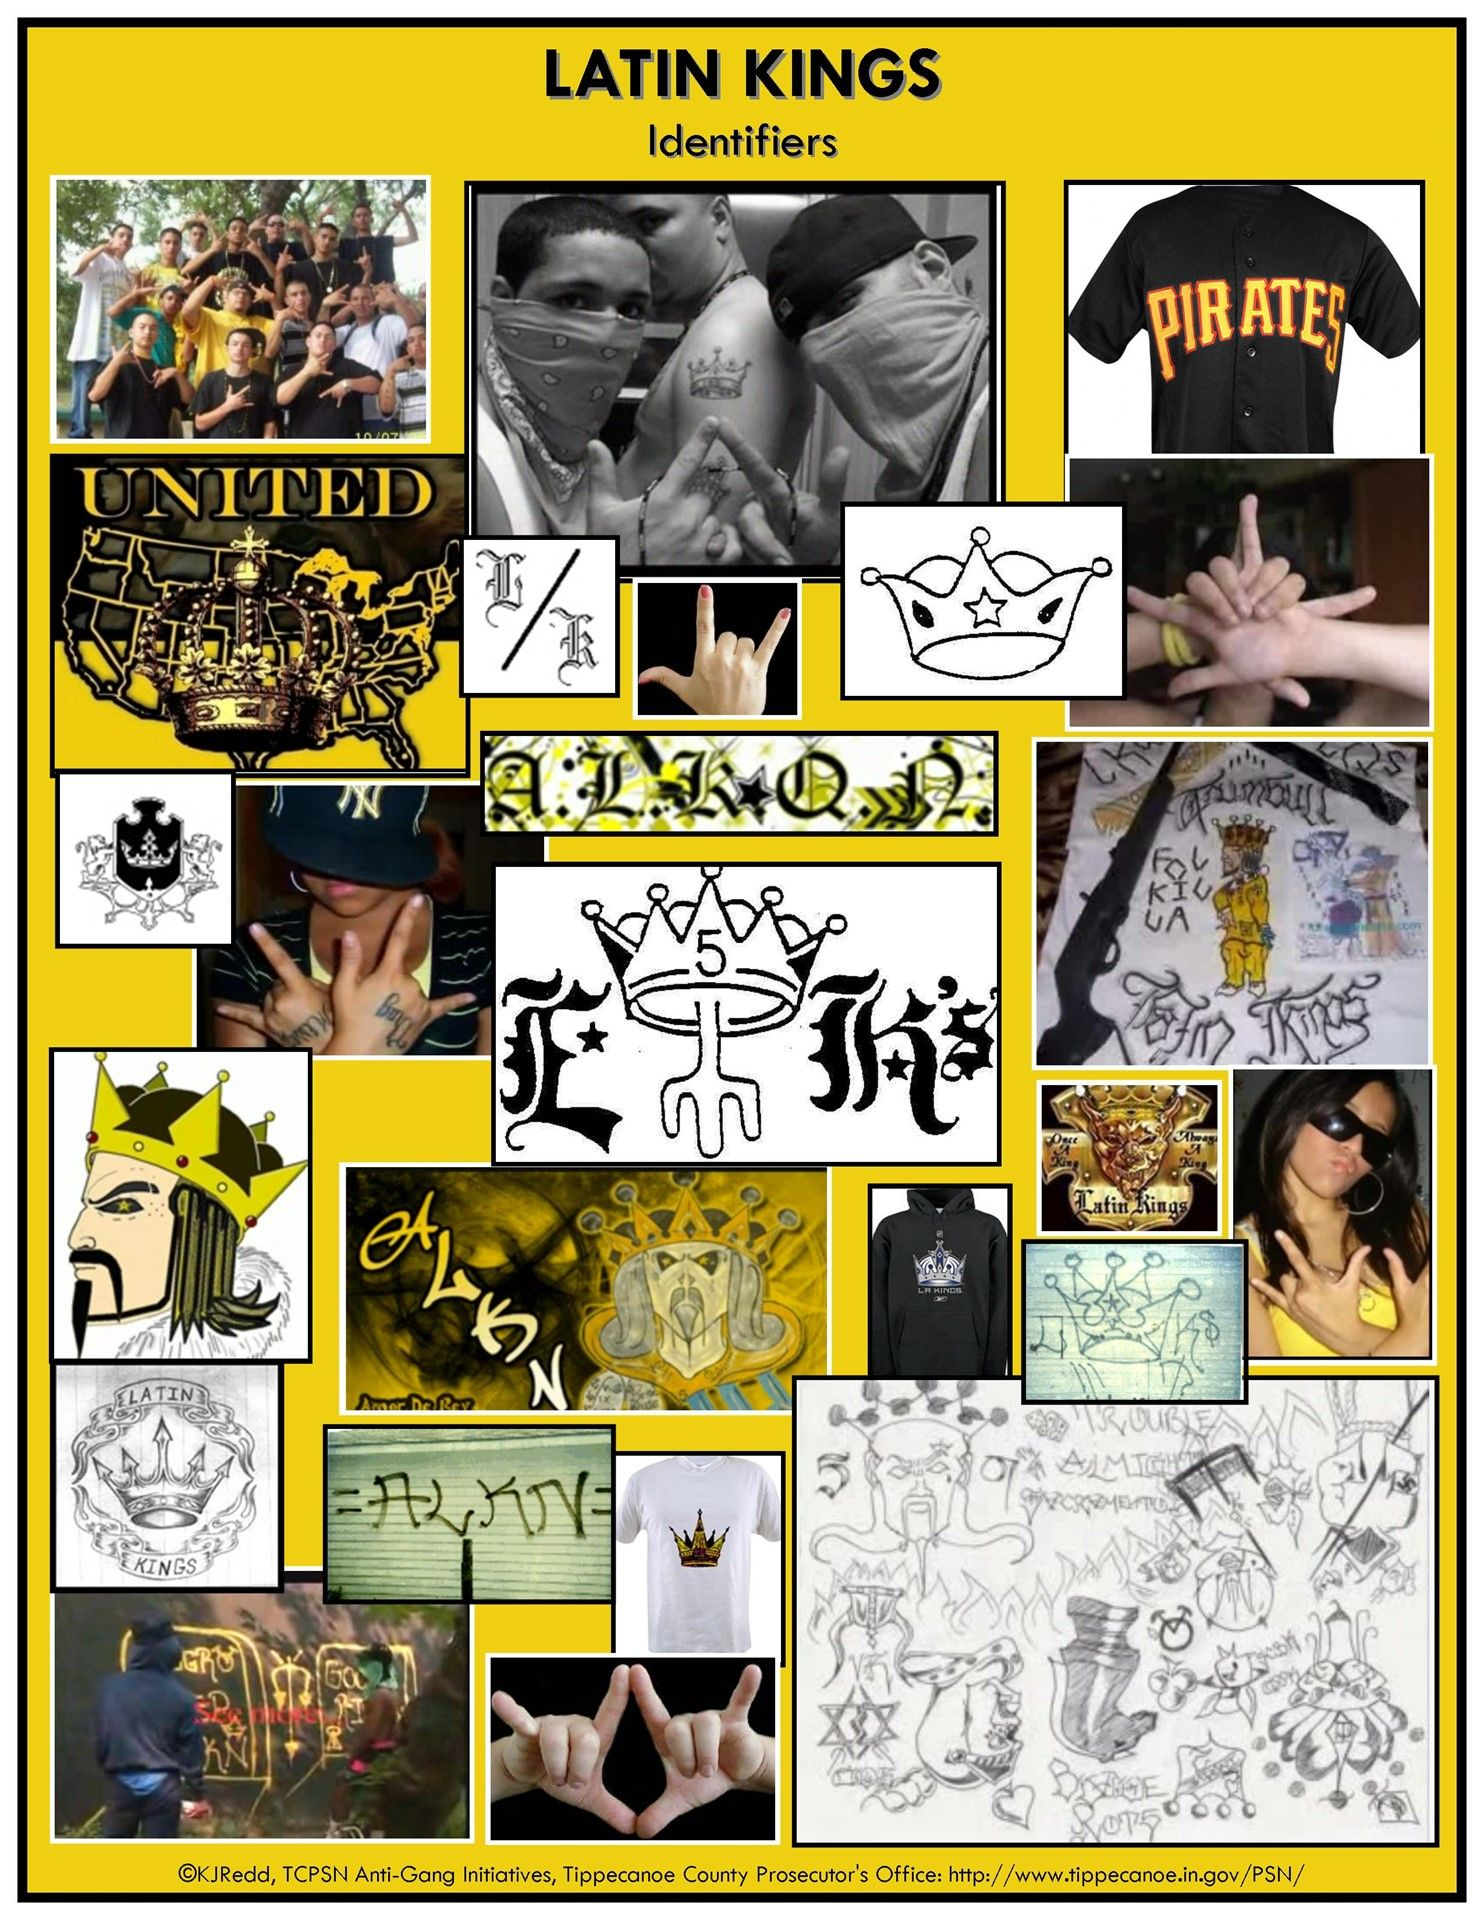 A collage of tattoos and identifiers of the Latin Kings gang